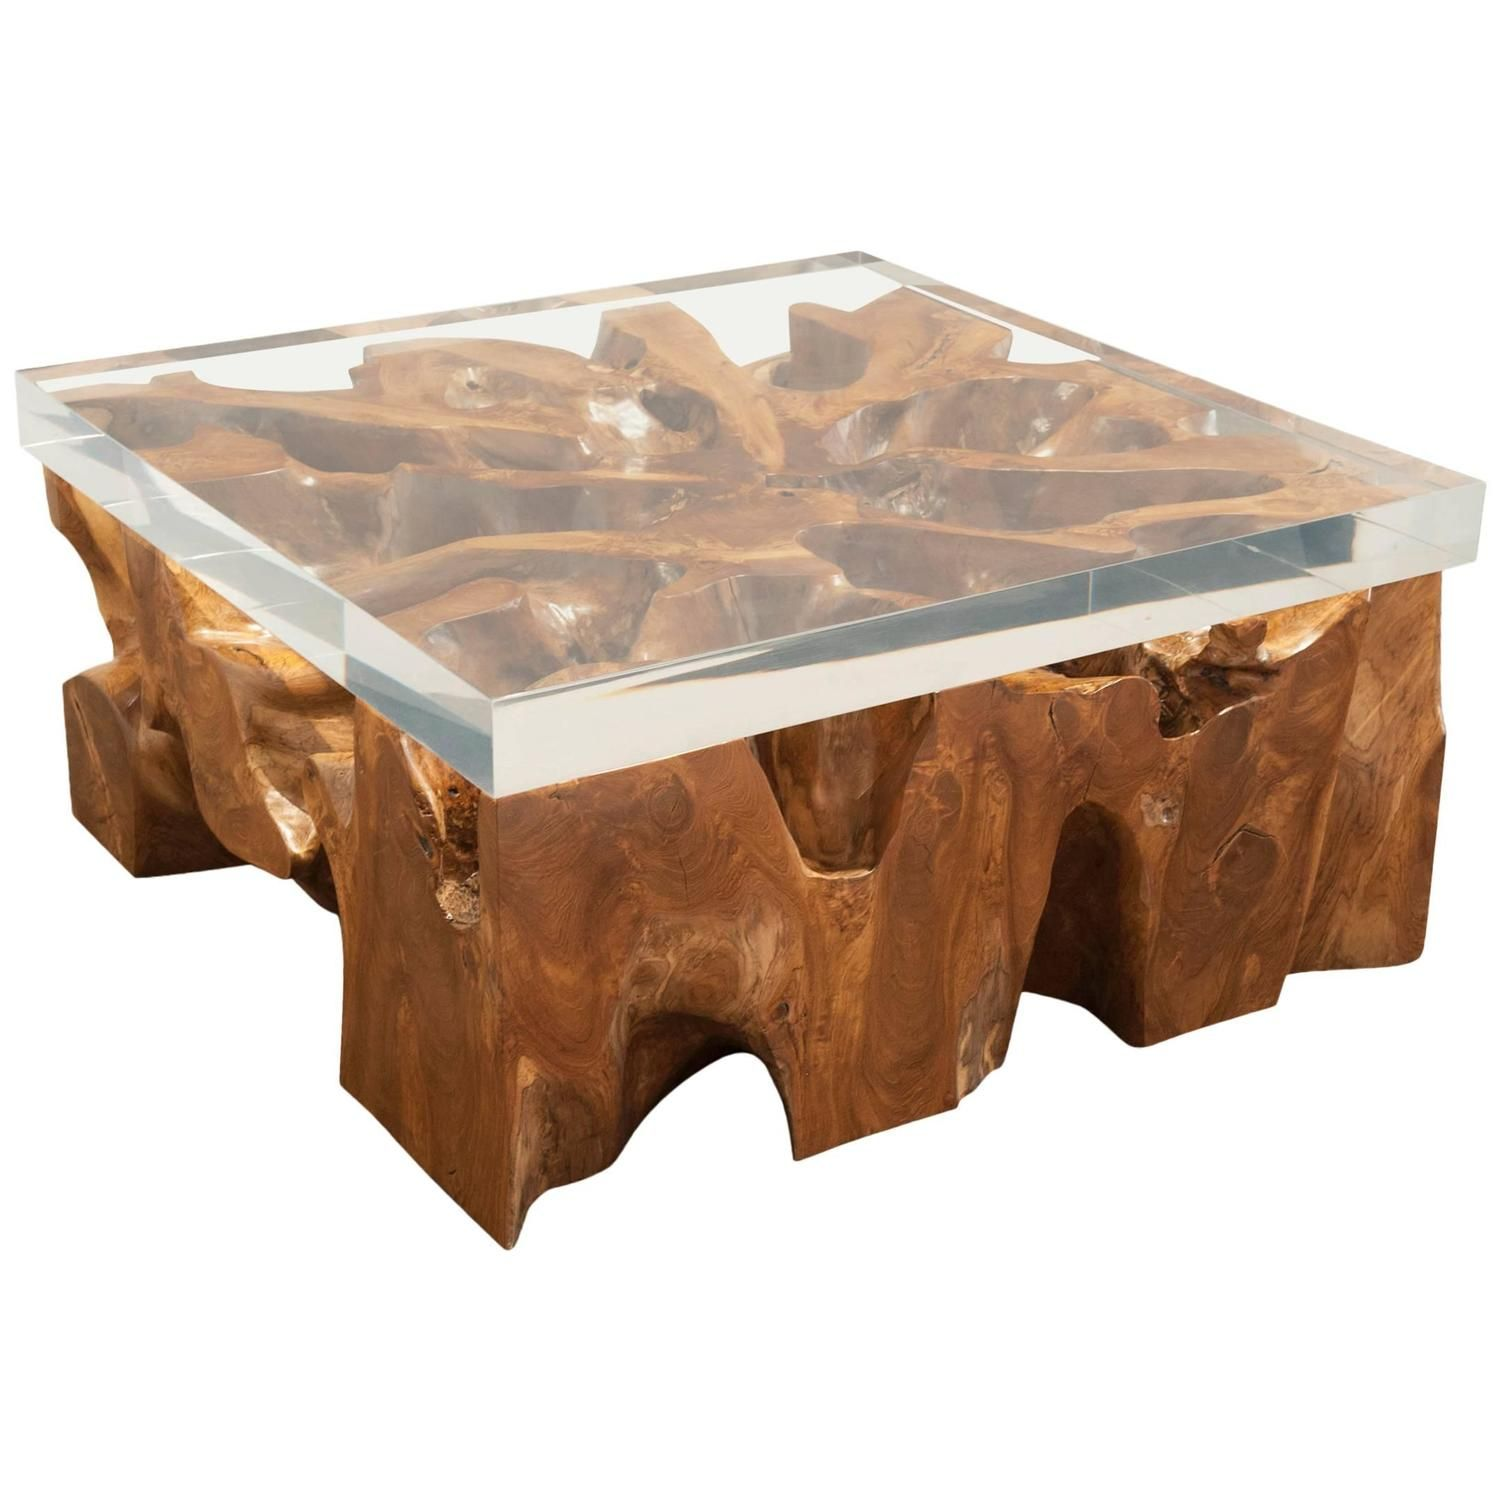 Charmant Large Lucite And Wood Coffee Table   From A Unique Collection Of Antique  And Modern Coffee And Cocktail Tables At ...